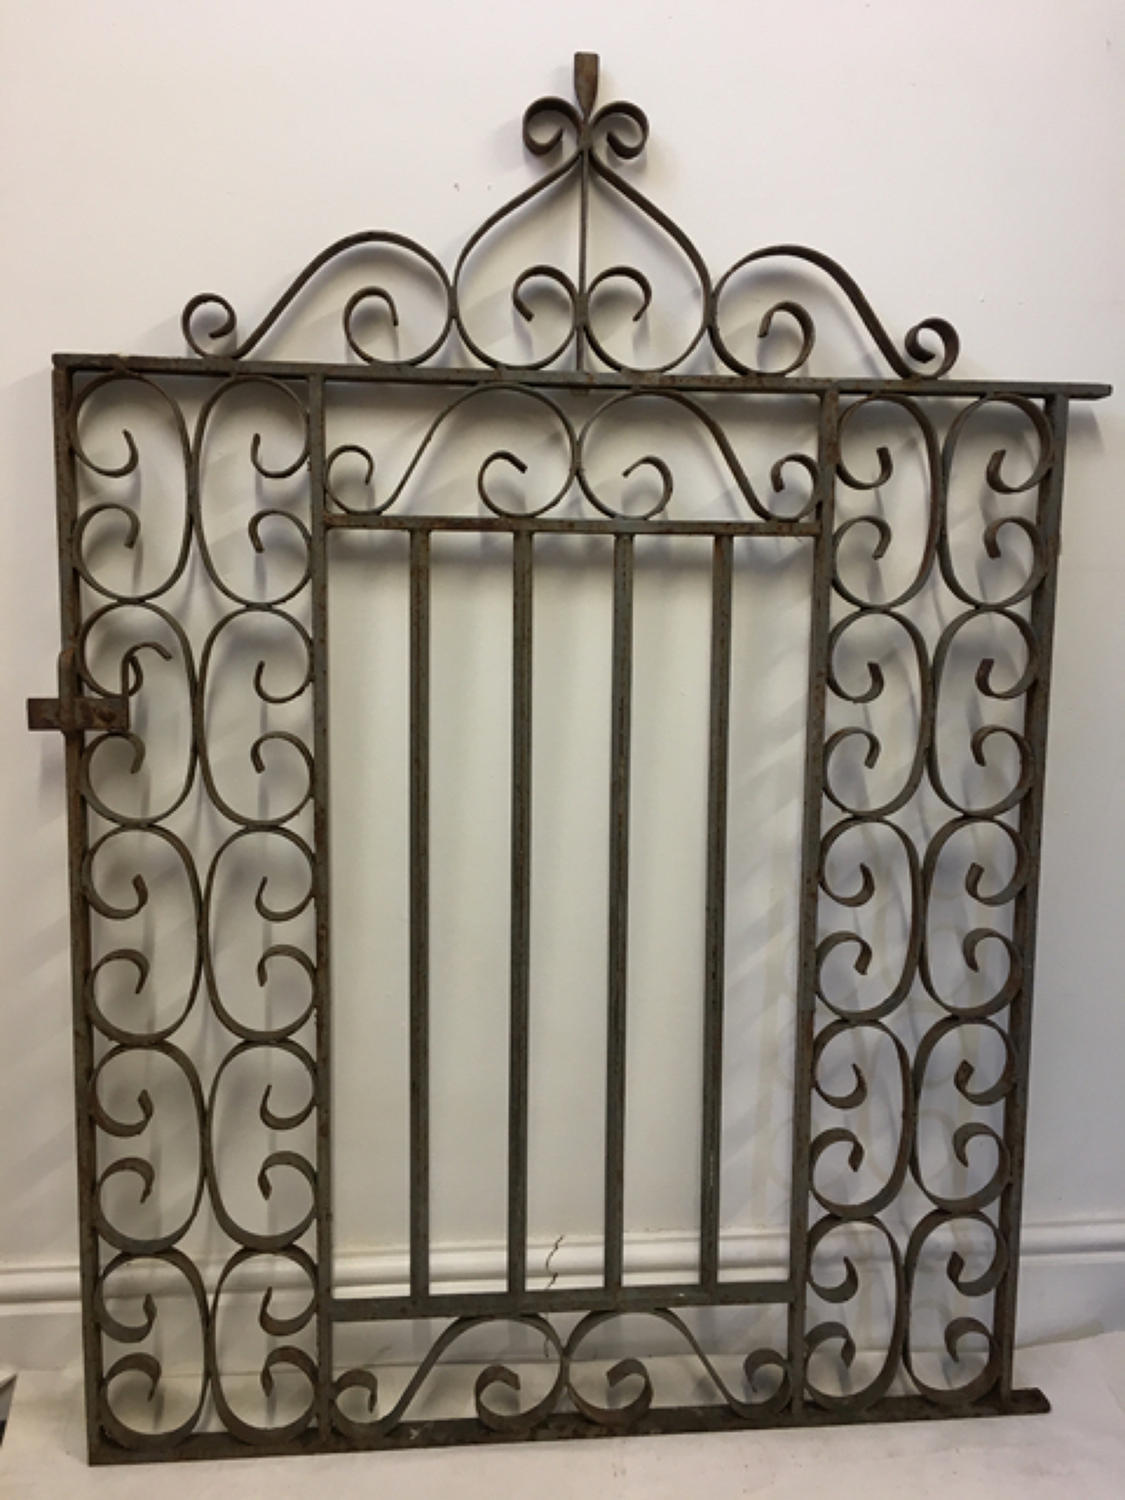 Rustic cast iron garden gate